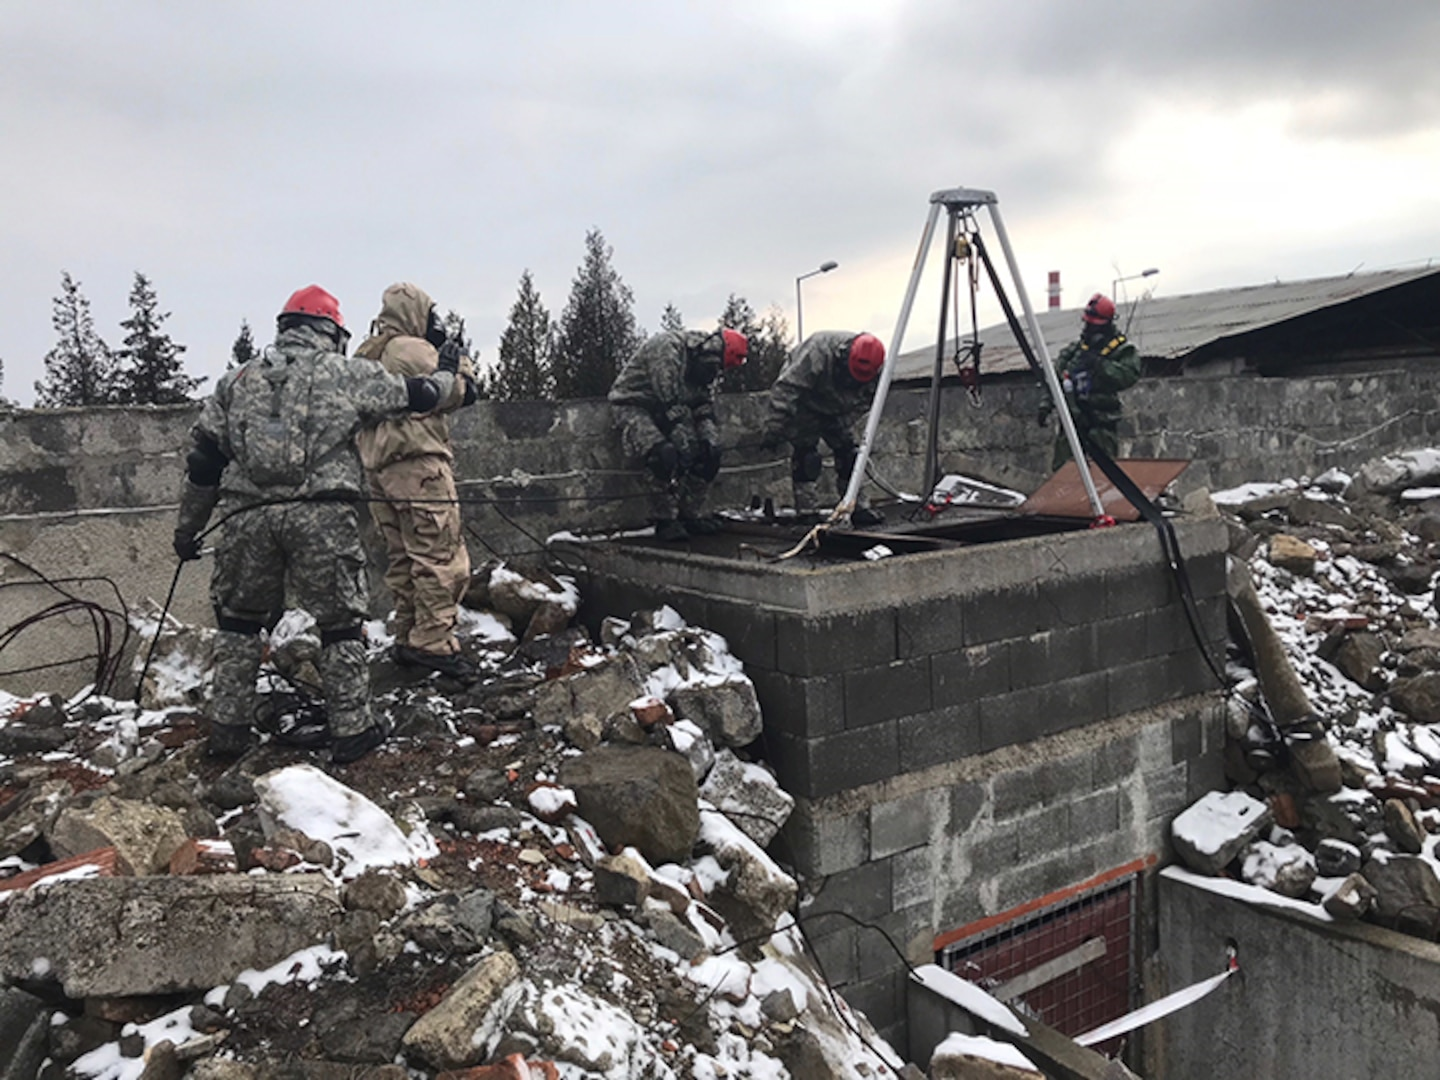 Texas Army National Guard engineers from the 836h Engineer Company, 136th Maneuver Enhancement Brigade, work alongside soldiers from the Indiana National Guard, the Czech Republic and Slovakia in support of Operation Toxic Lance, a search and rescue exercise involving a chemical warfare scenario, March 12-23, 2018, at Training Area Lest in central Slovakia. The soldiers were brought together as part of the National Guard Bureau's State Partnership Program that focuses on building interoperability and strengthening international relationships through military-to-military exchanges.